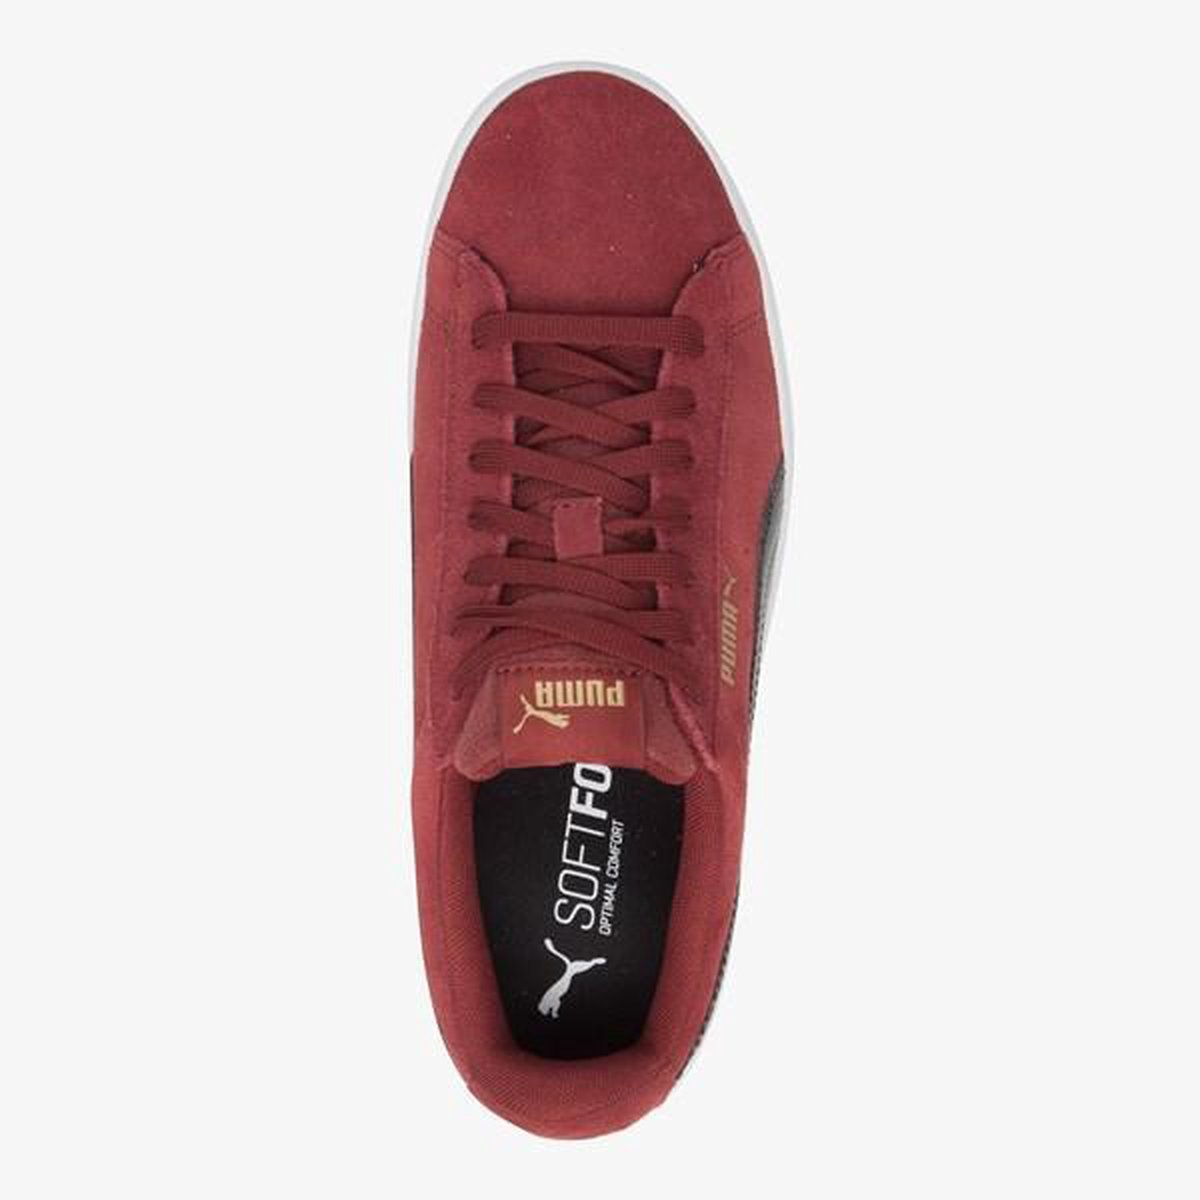 | Puma Vikky Stacked dames sneakers Rood Maat 39